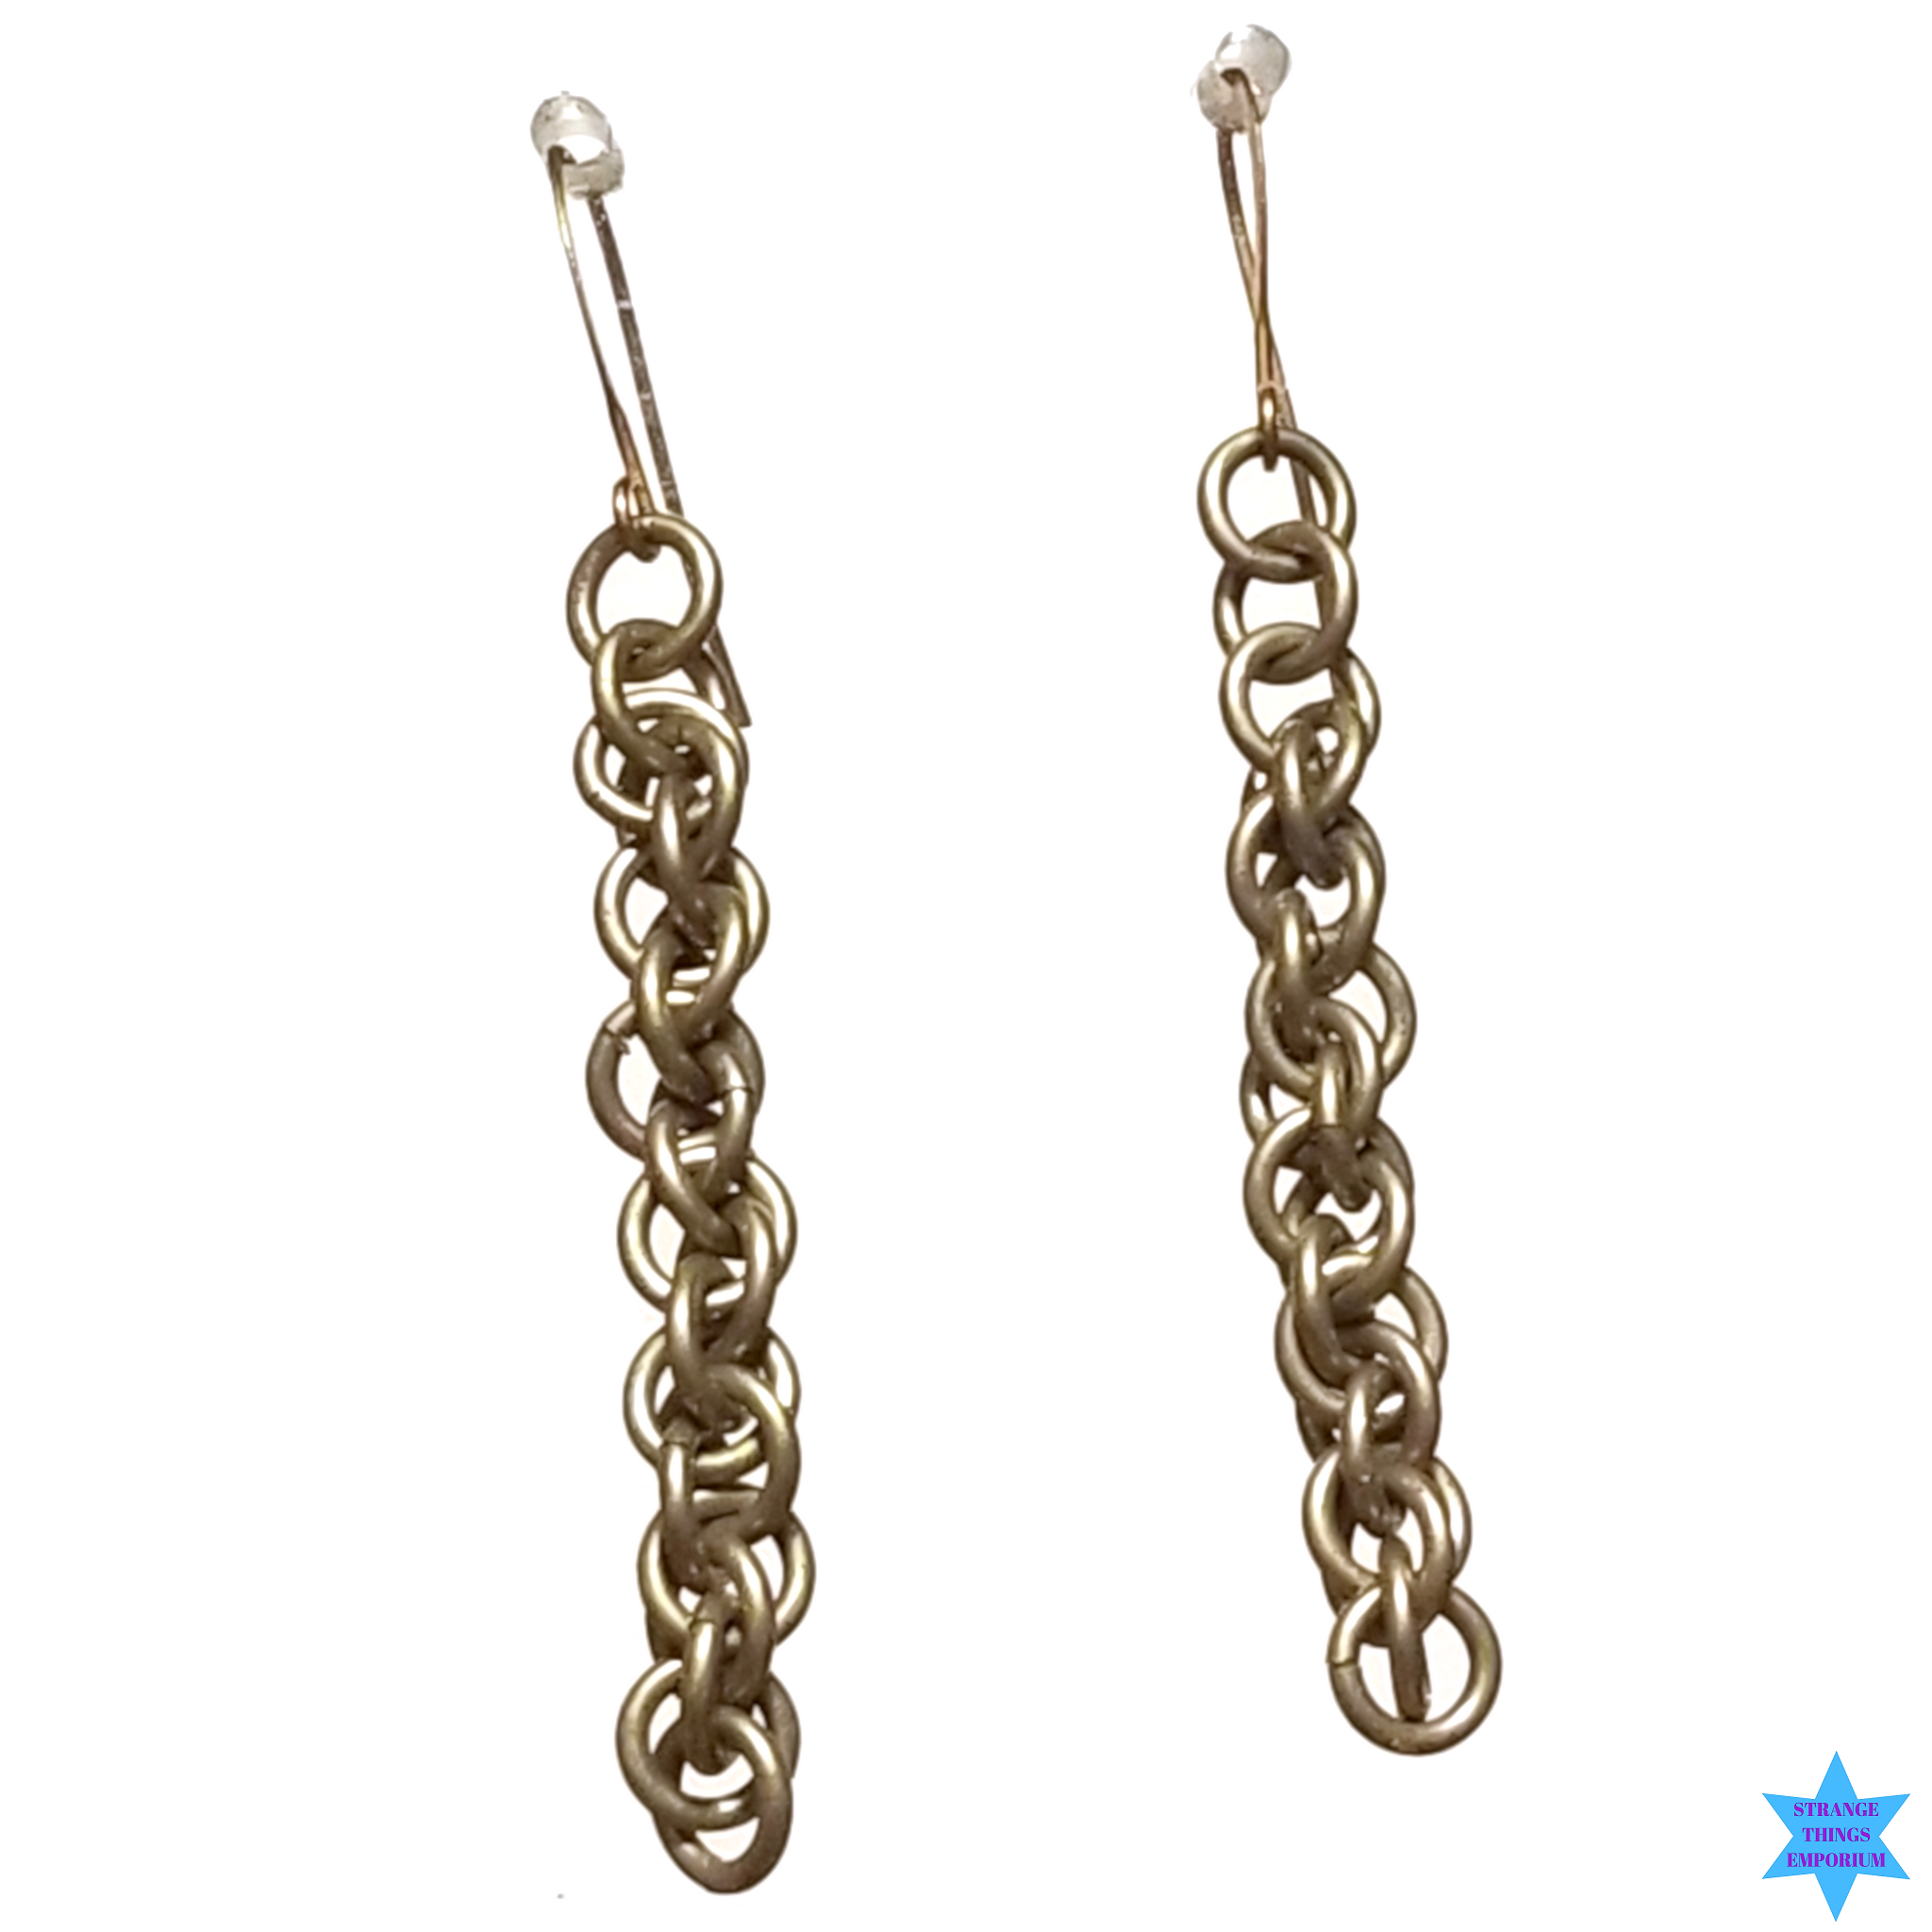 Dropping Links Earrings - Strange Things Emporium